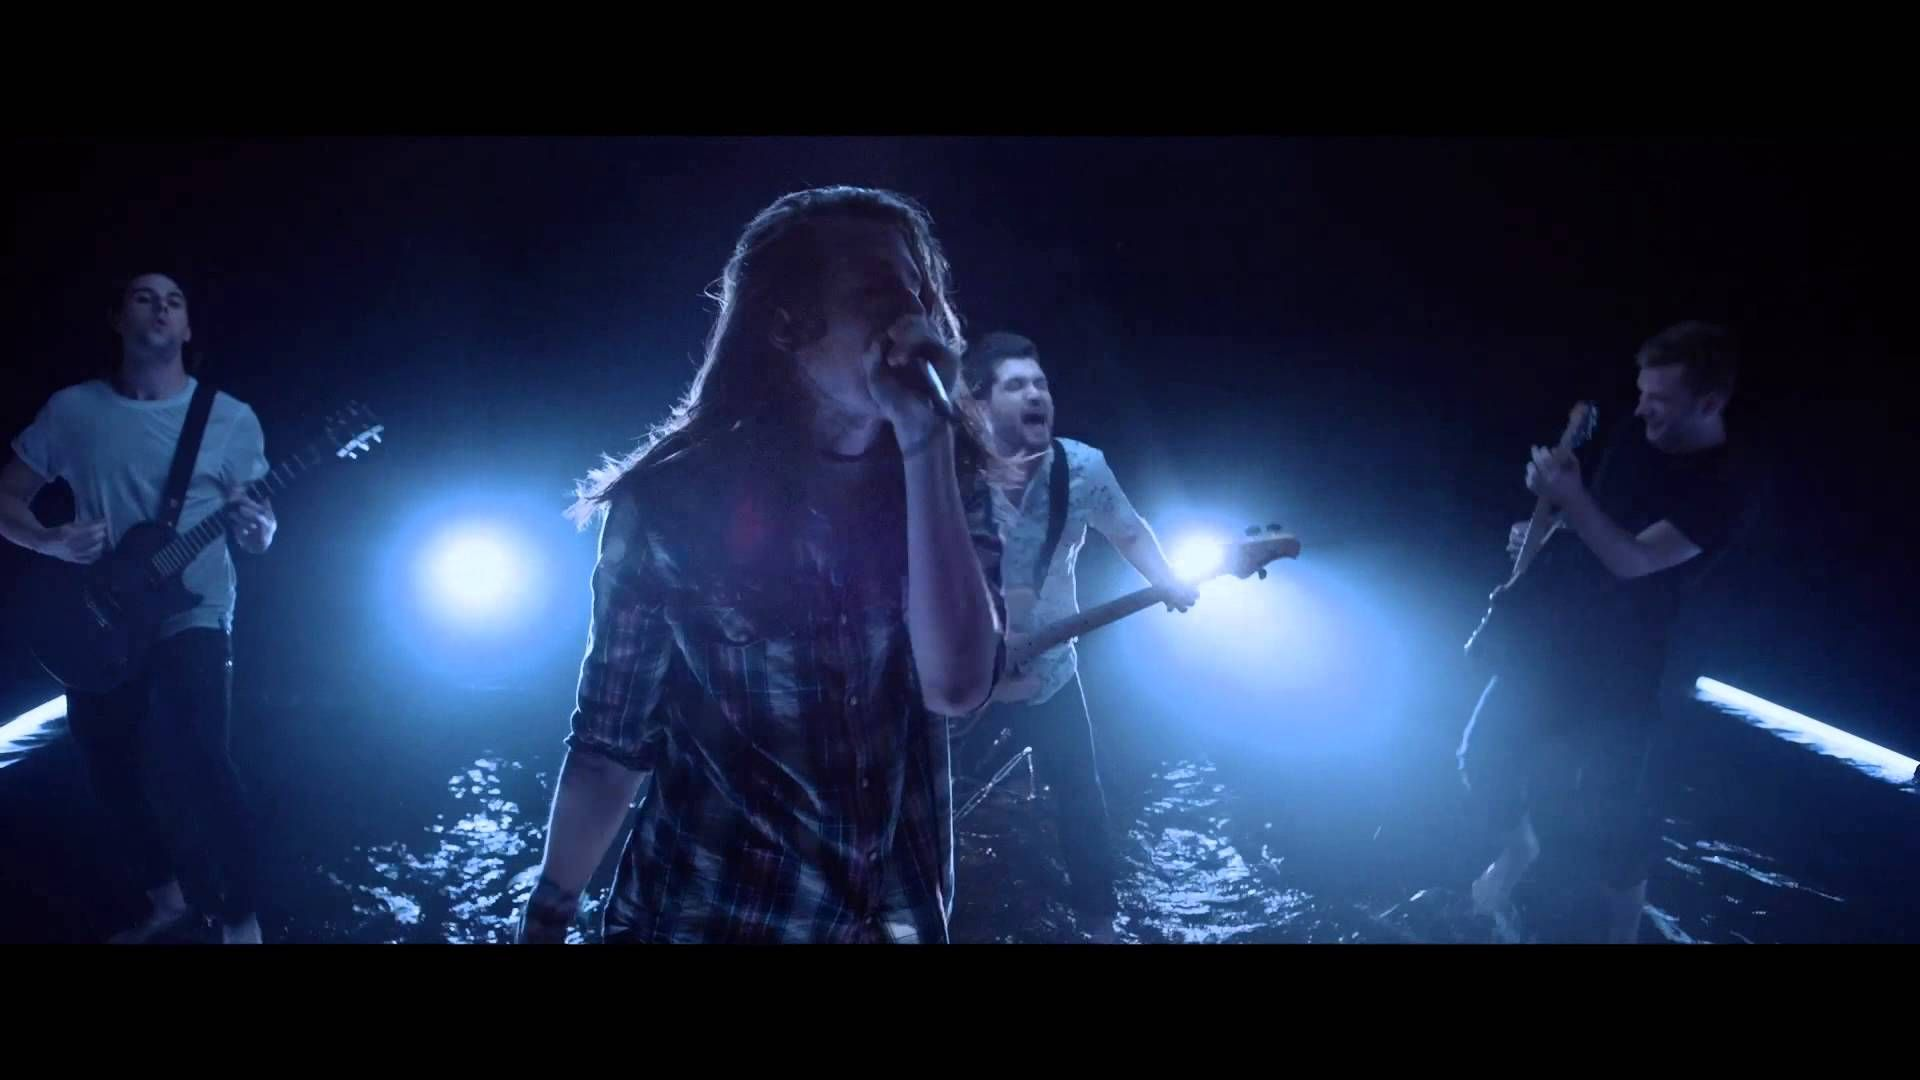 Mayday Parade - One Of Them Will Destroy The Other (Feat. Dan Lambton) (... #maydayparade #rock #emo #indie